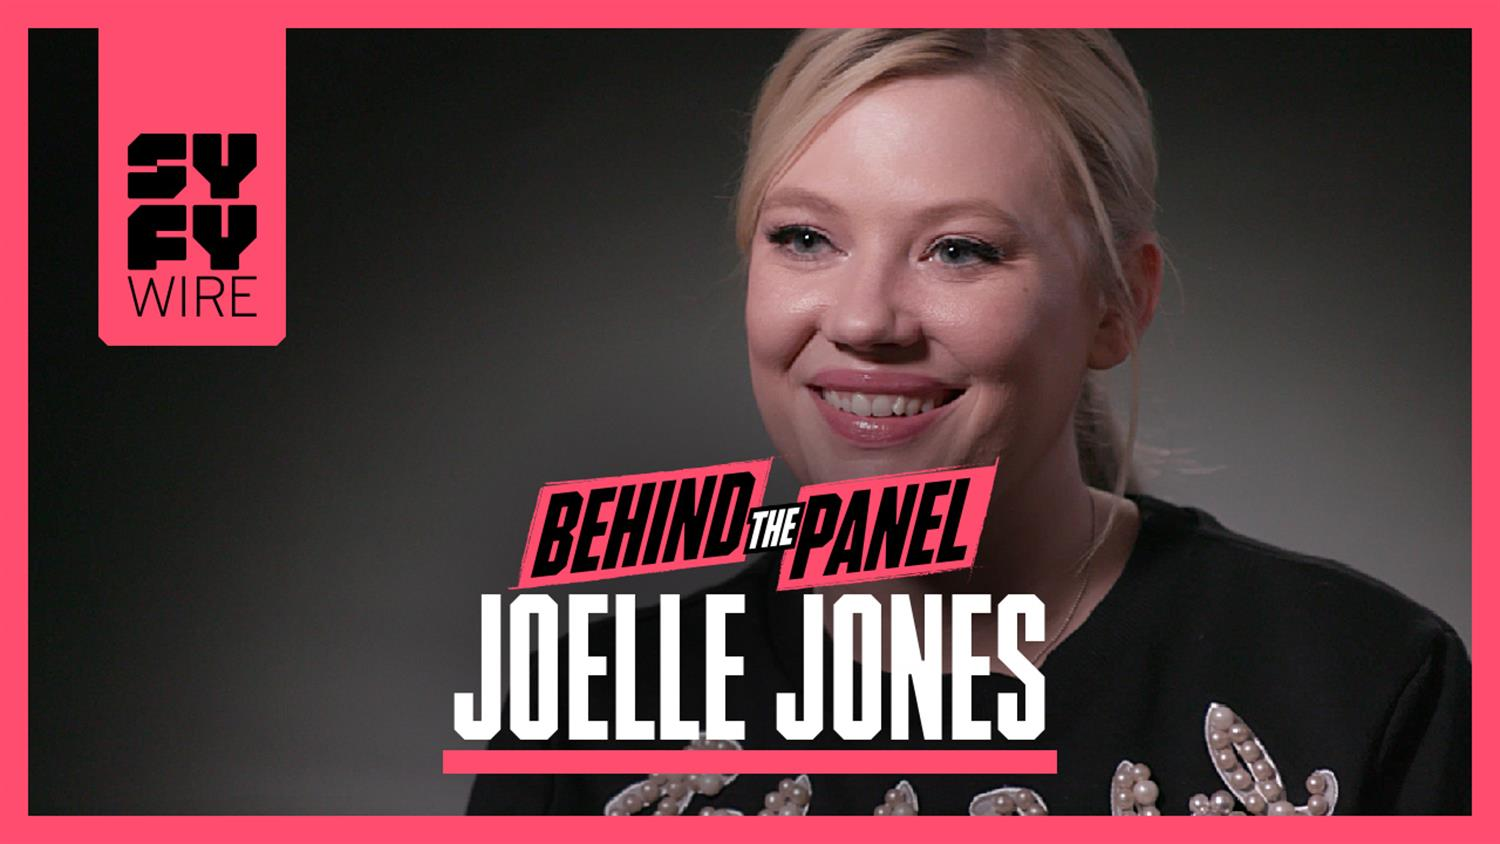 How To Make Comic Dreams Come True: Joelle Jones' Story (Behind the Panel)